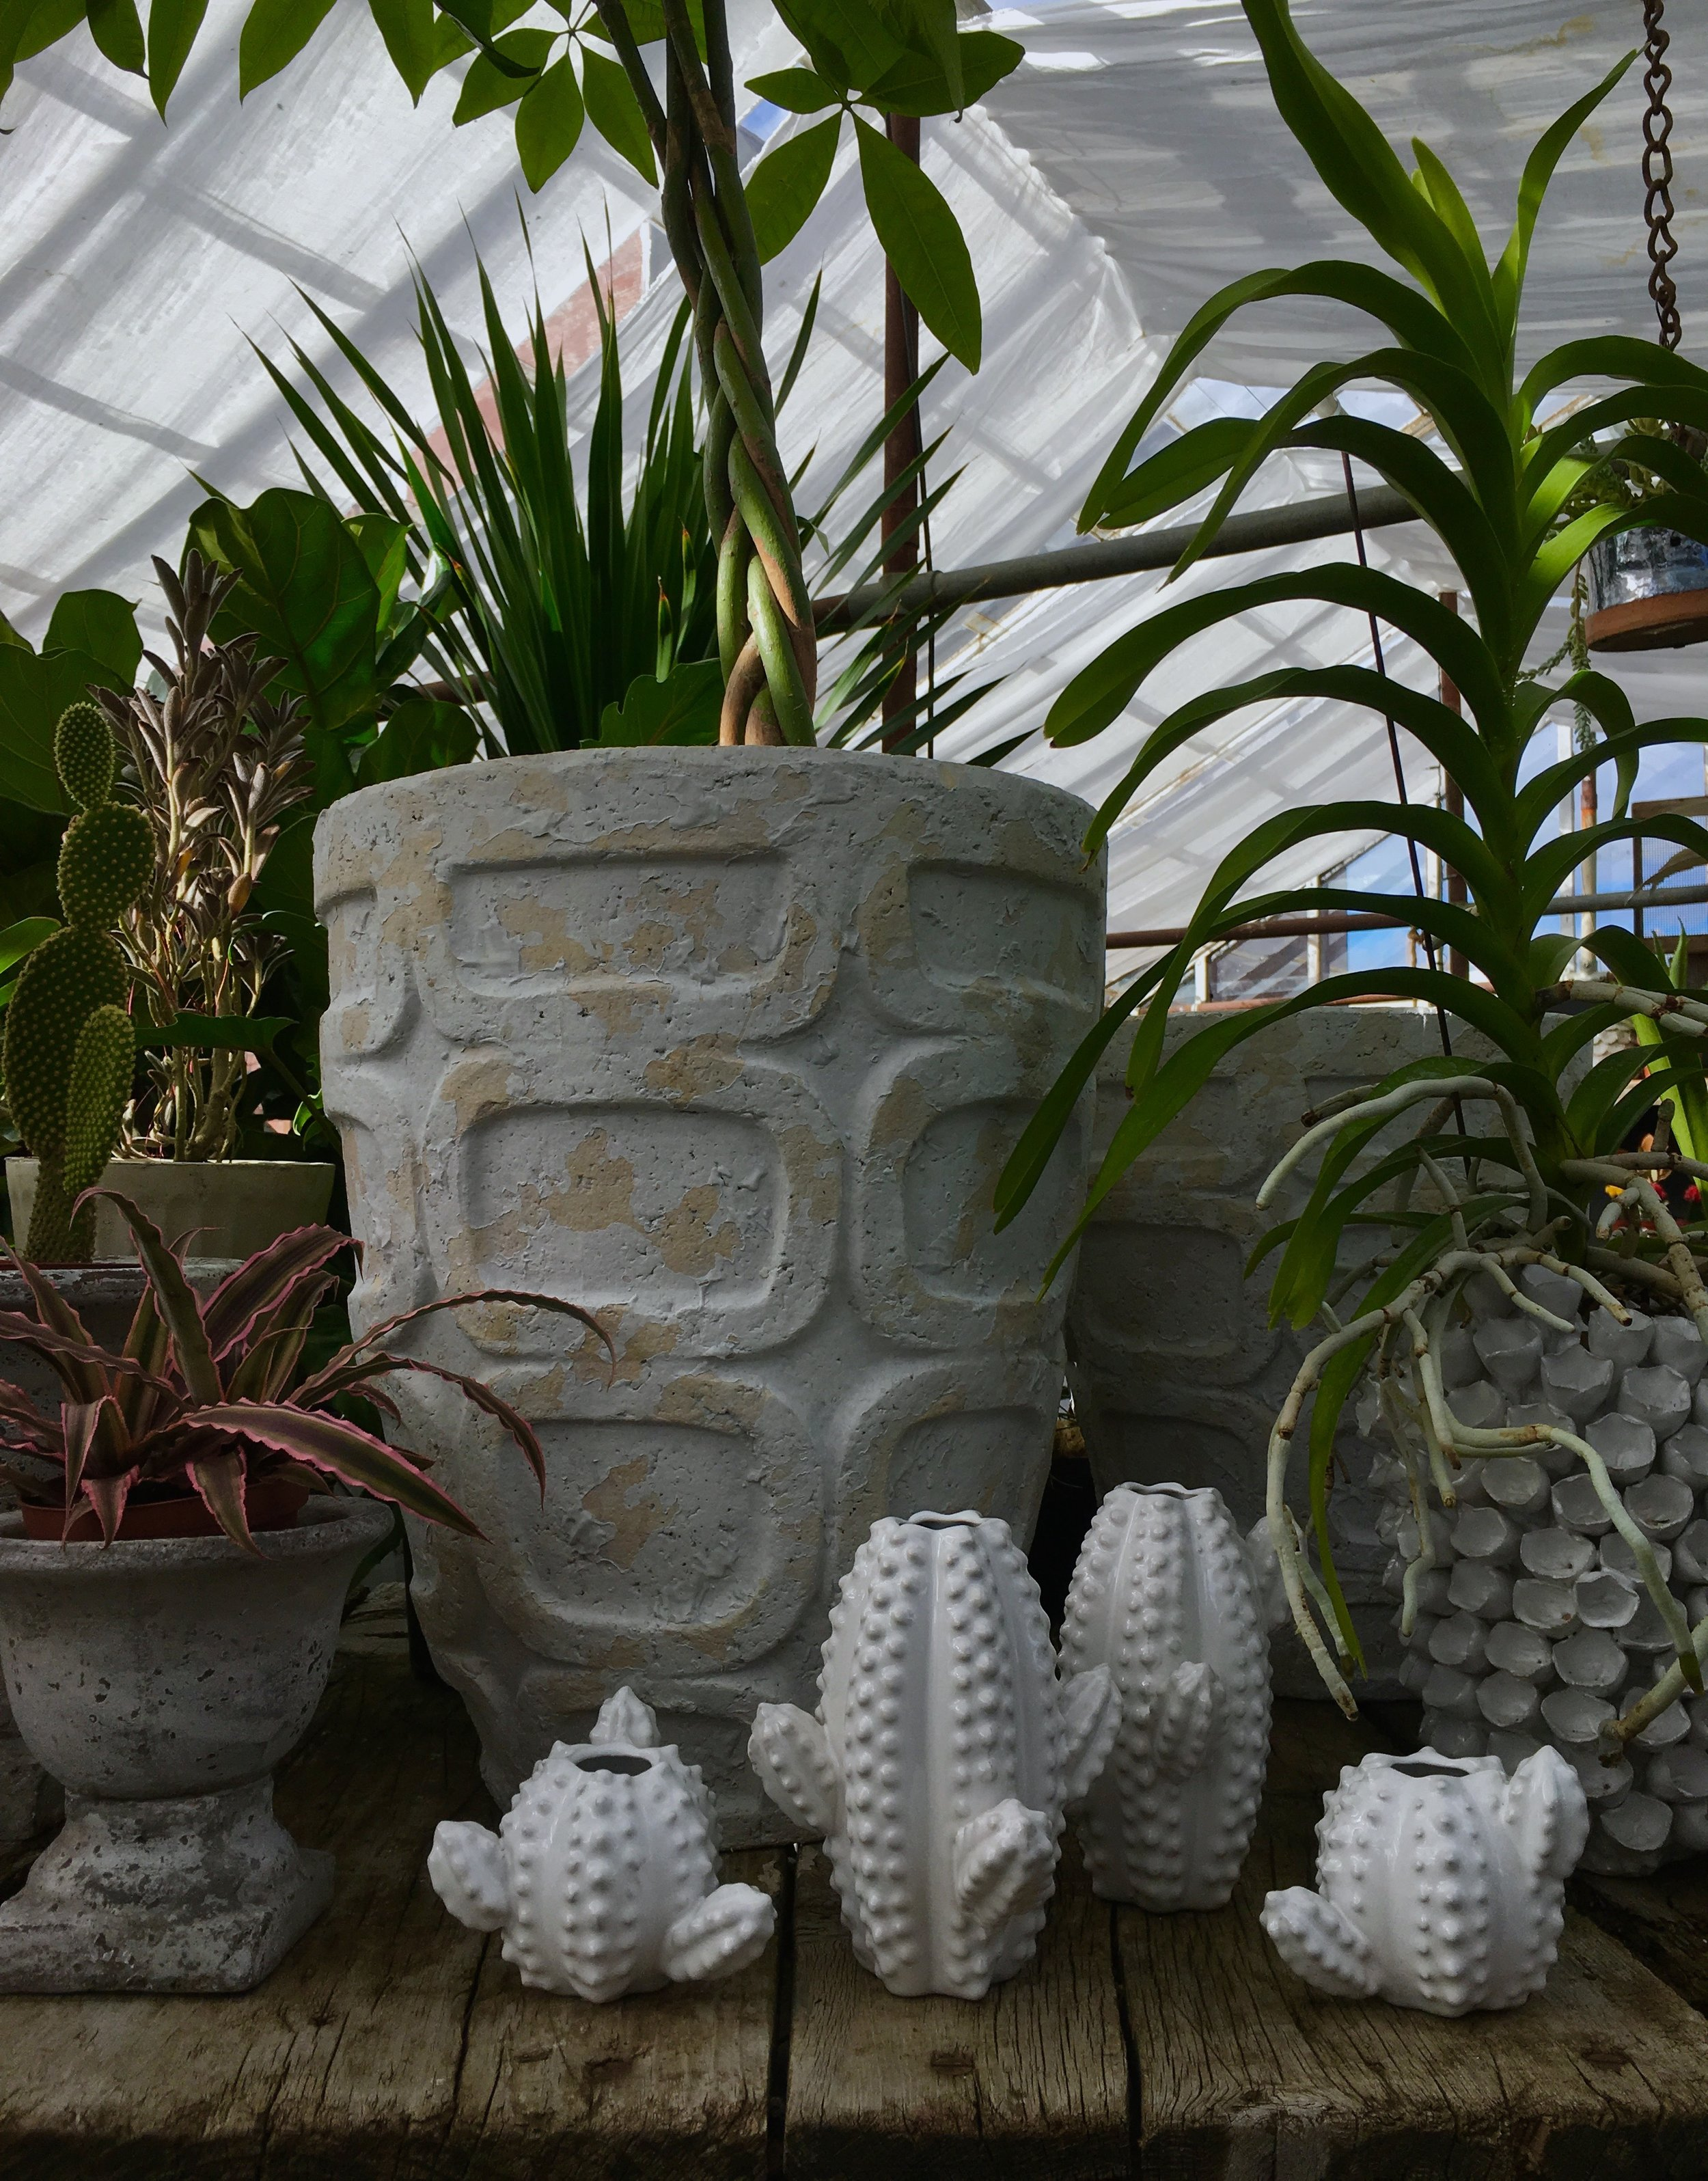 Copy of Mid-century Containers and succulents